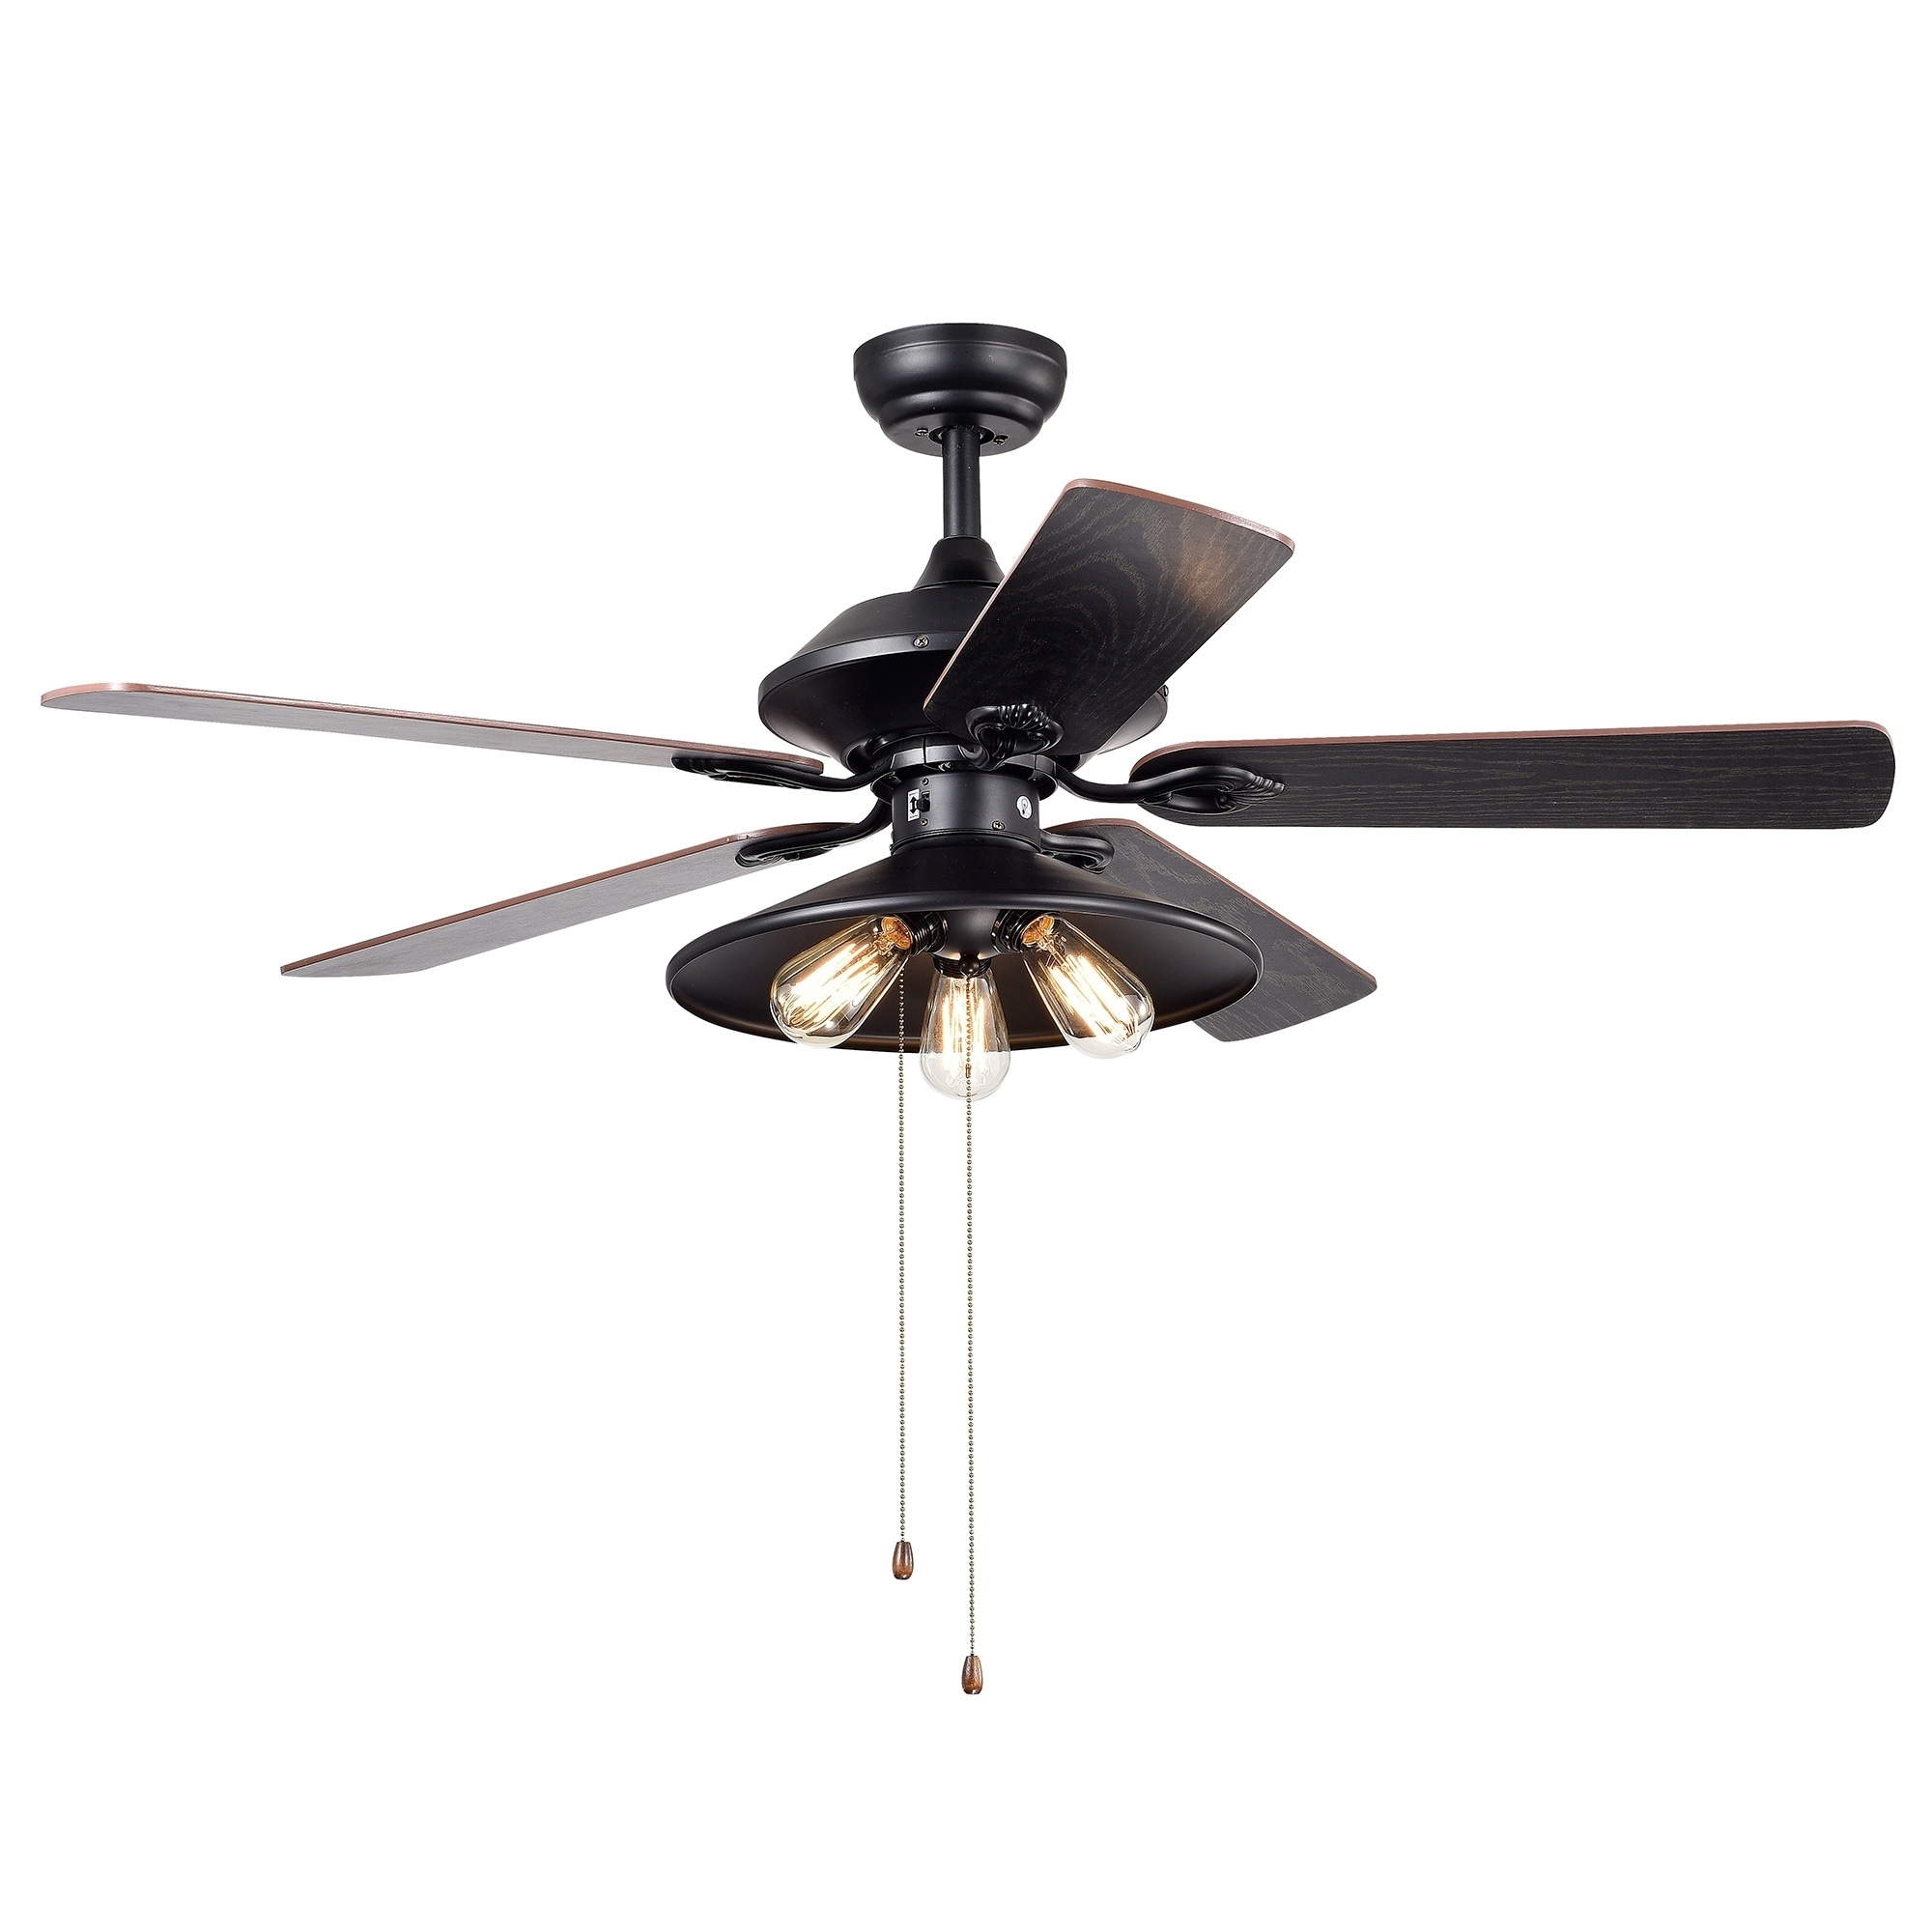 Upille 3 Light Metal 5 Blade 52 Inch Matte Black Ceiling Fan Includes Edison Bulbs On Free Shipping Today 21723973